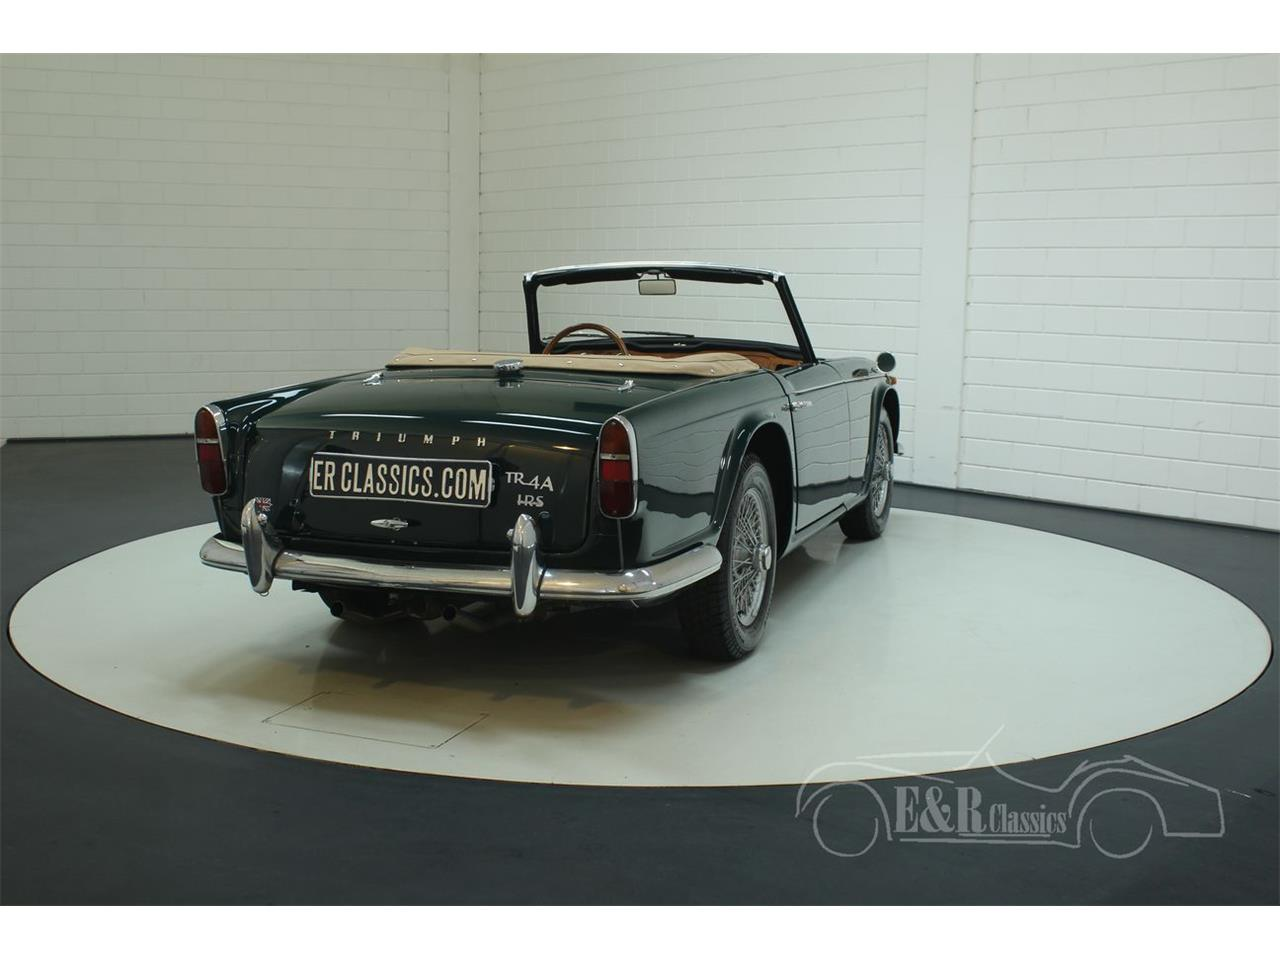 Large Picture of Classic '67 Triumph TR4 located in Waalwijk Noord-Brabant - $55,750.00 - Q45O